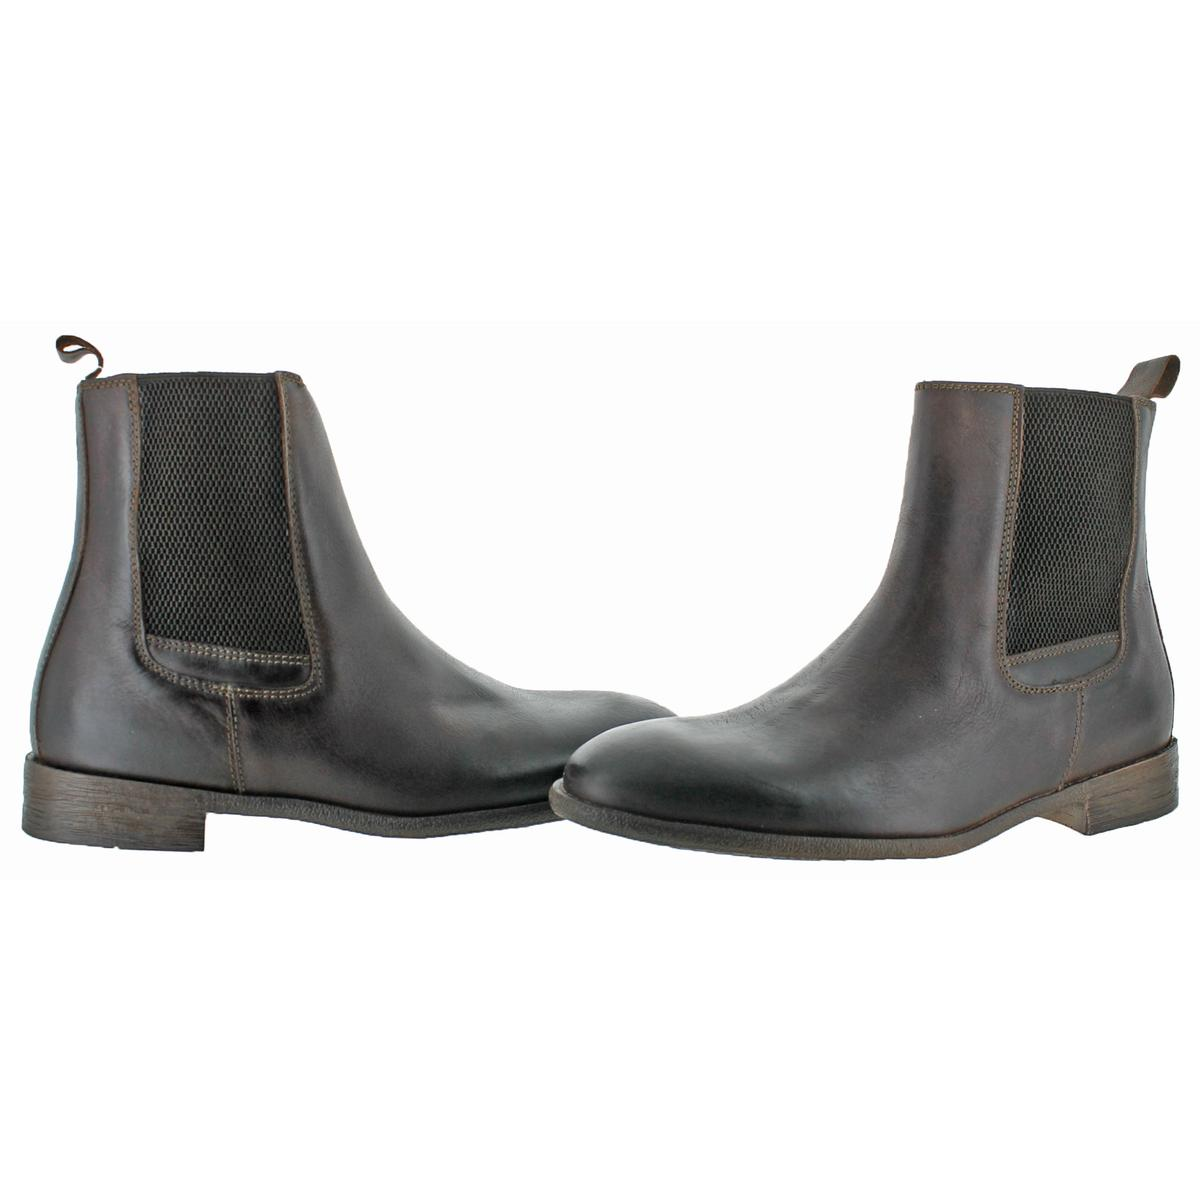 Robert-Wayne-Oregon-Men-039-s-Leather-Round-Toe-Pull-On-Chelsea-Ankle-Boots-Shoes